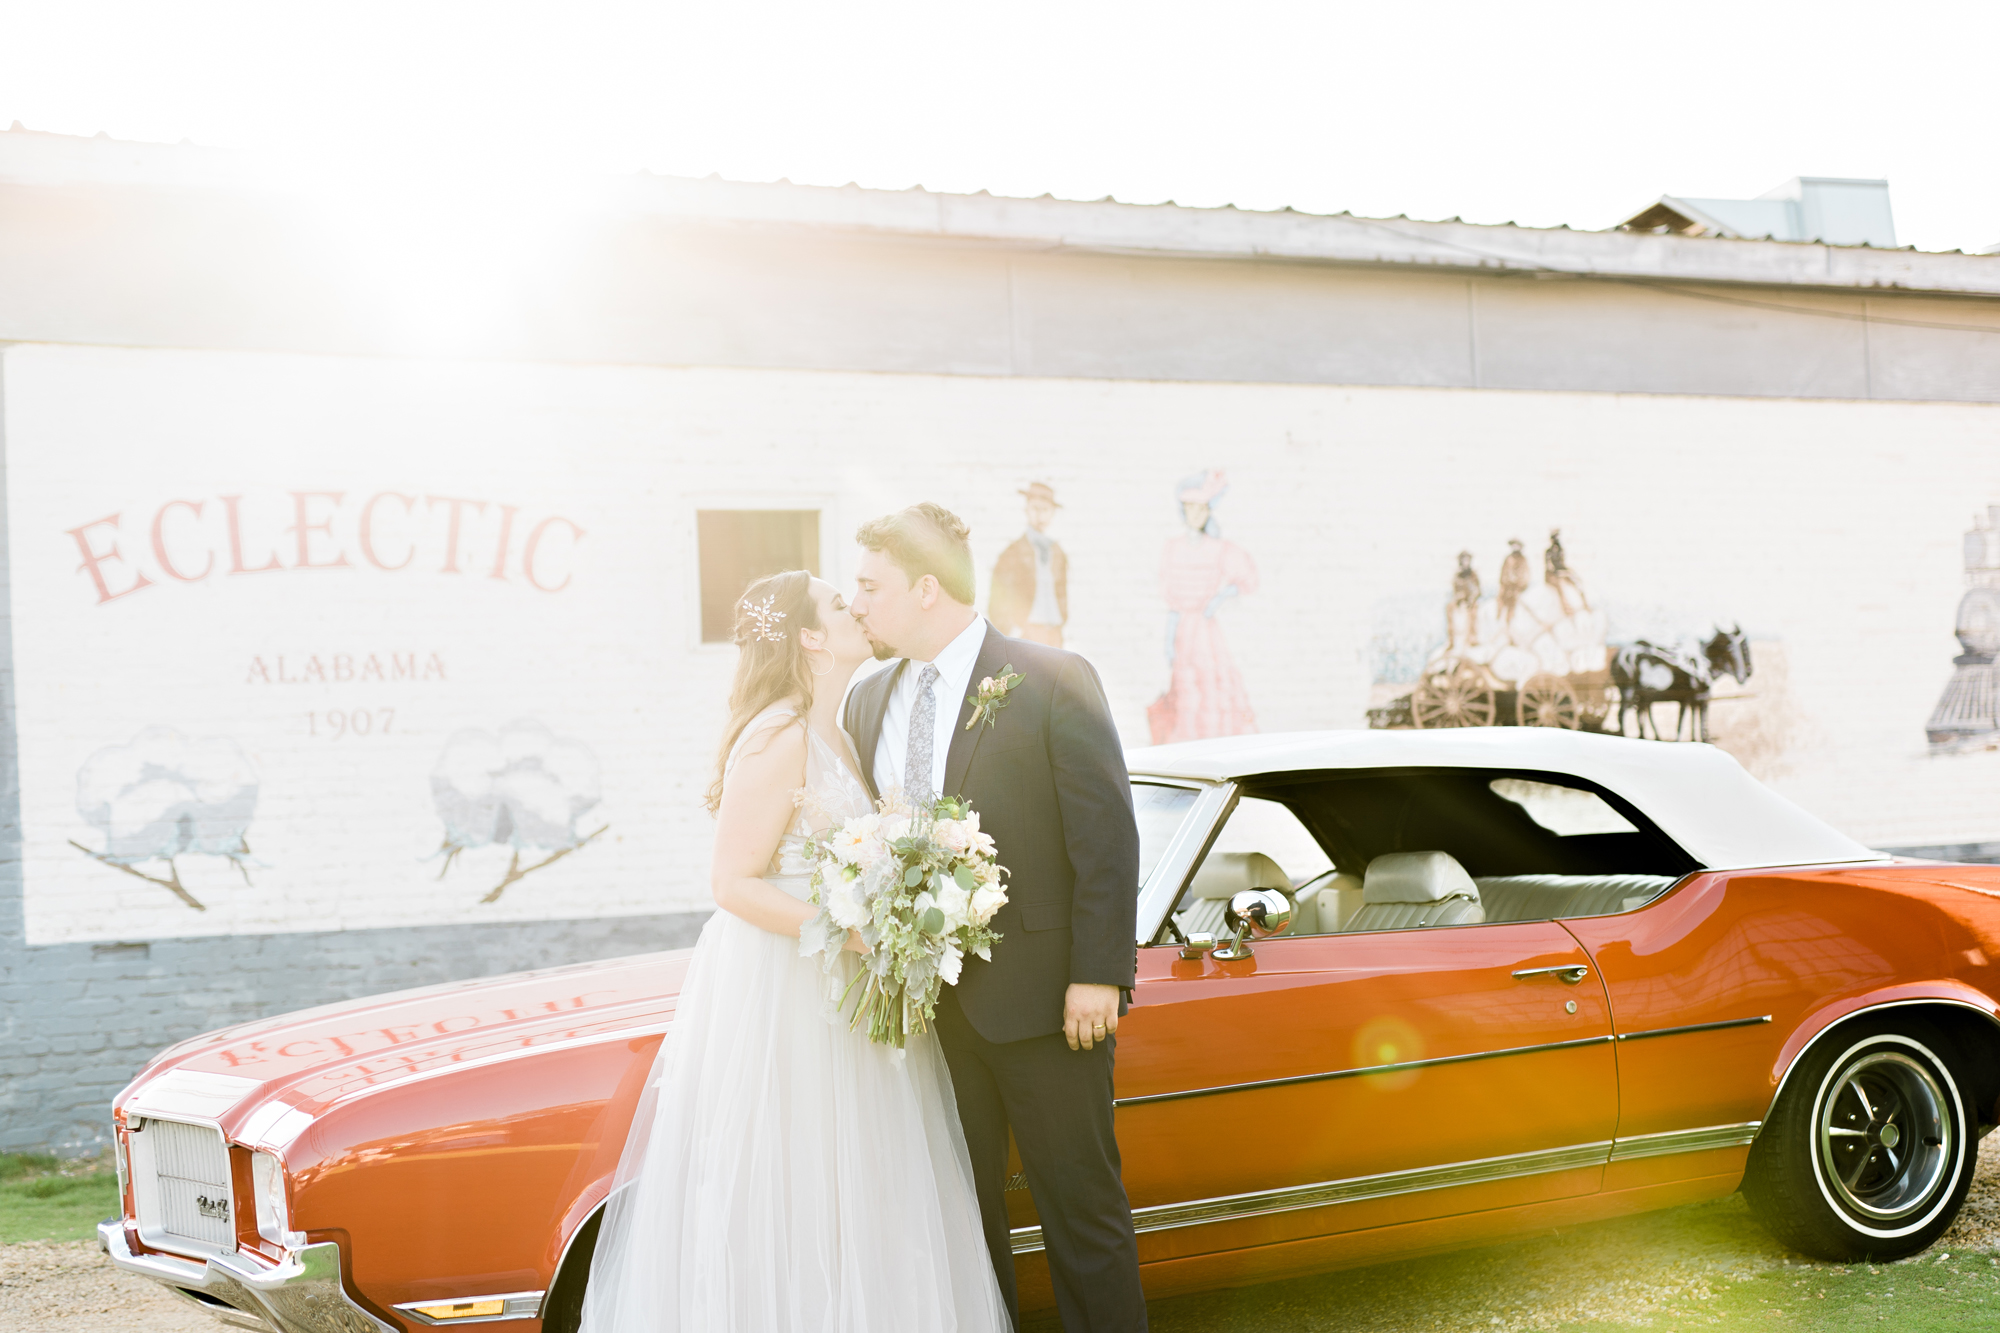 Eclectic-Alabama-Wedding-Photographers-Nick-Drollette-Photography-112.jpg